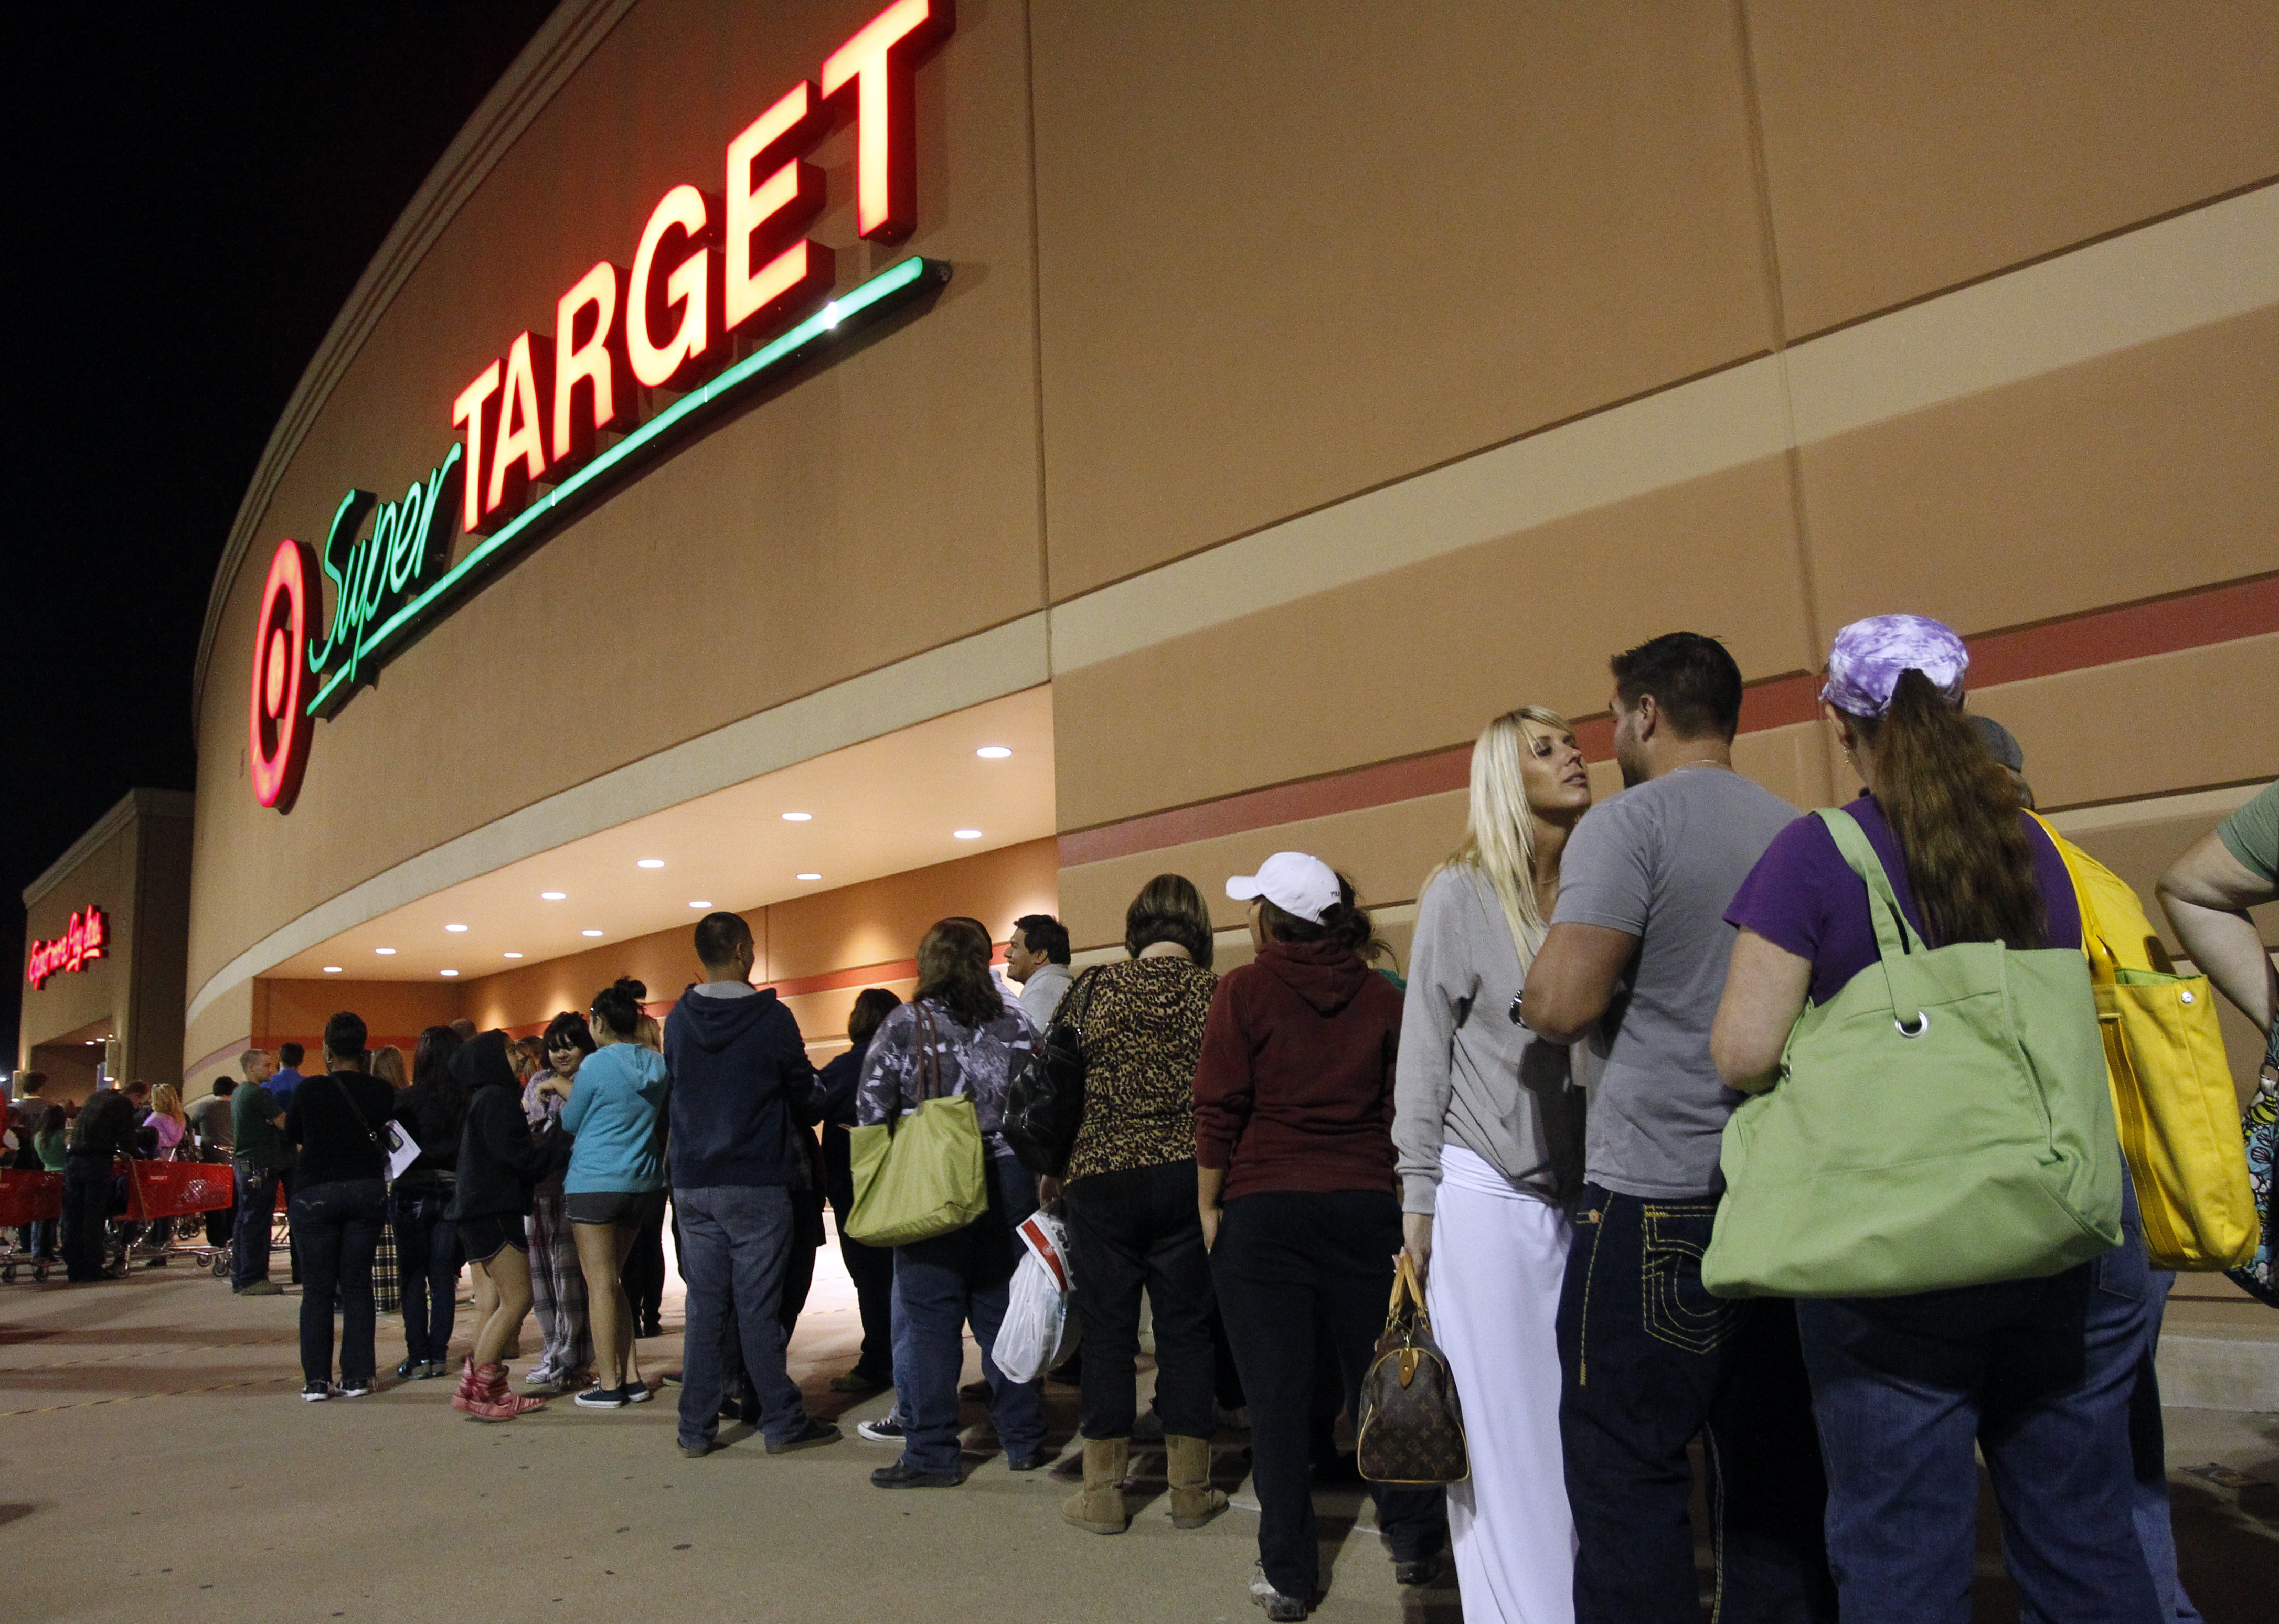 Target Stores To Open At 8 P M On Thanksgiving For Black Friday Deals